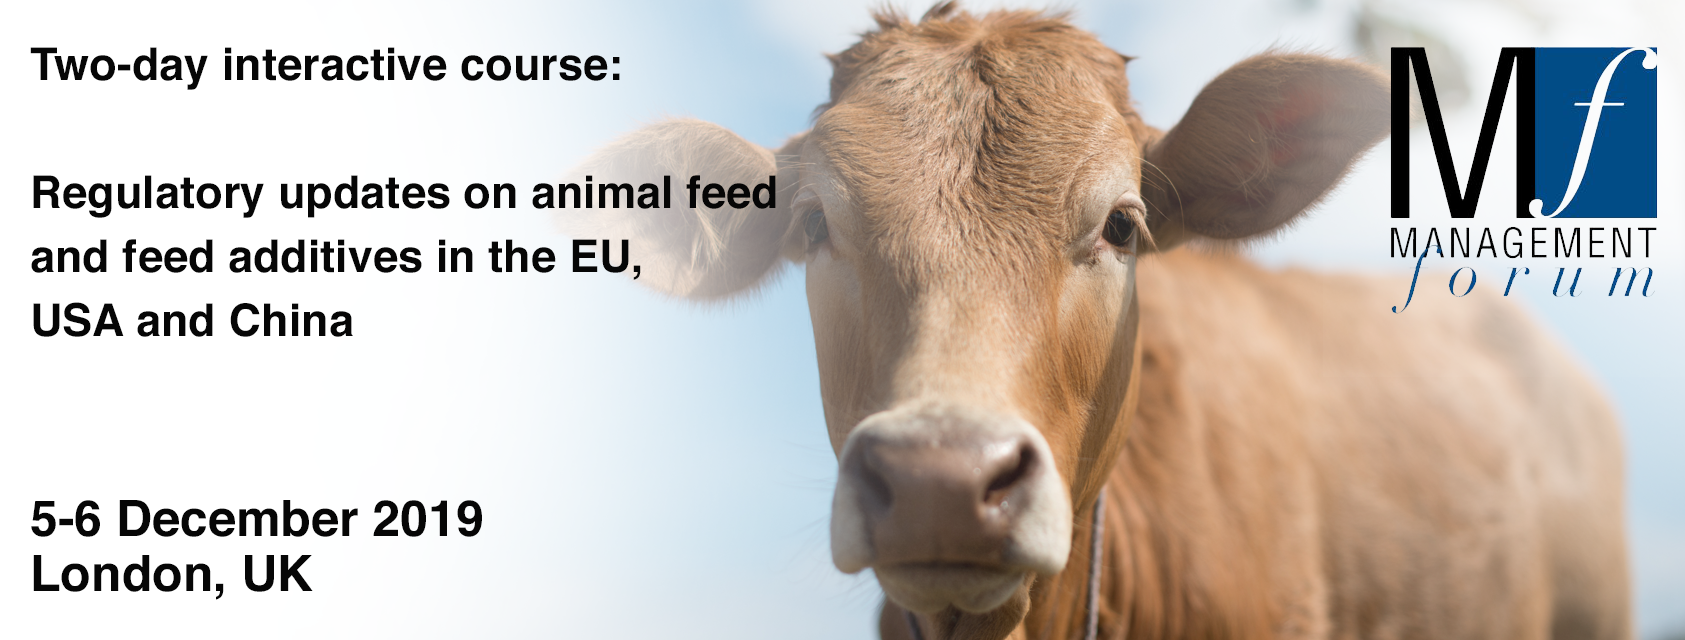 Join us for a two-day interactive course on regulatory updates on animal feed and feed additives in the EU, USA and China